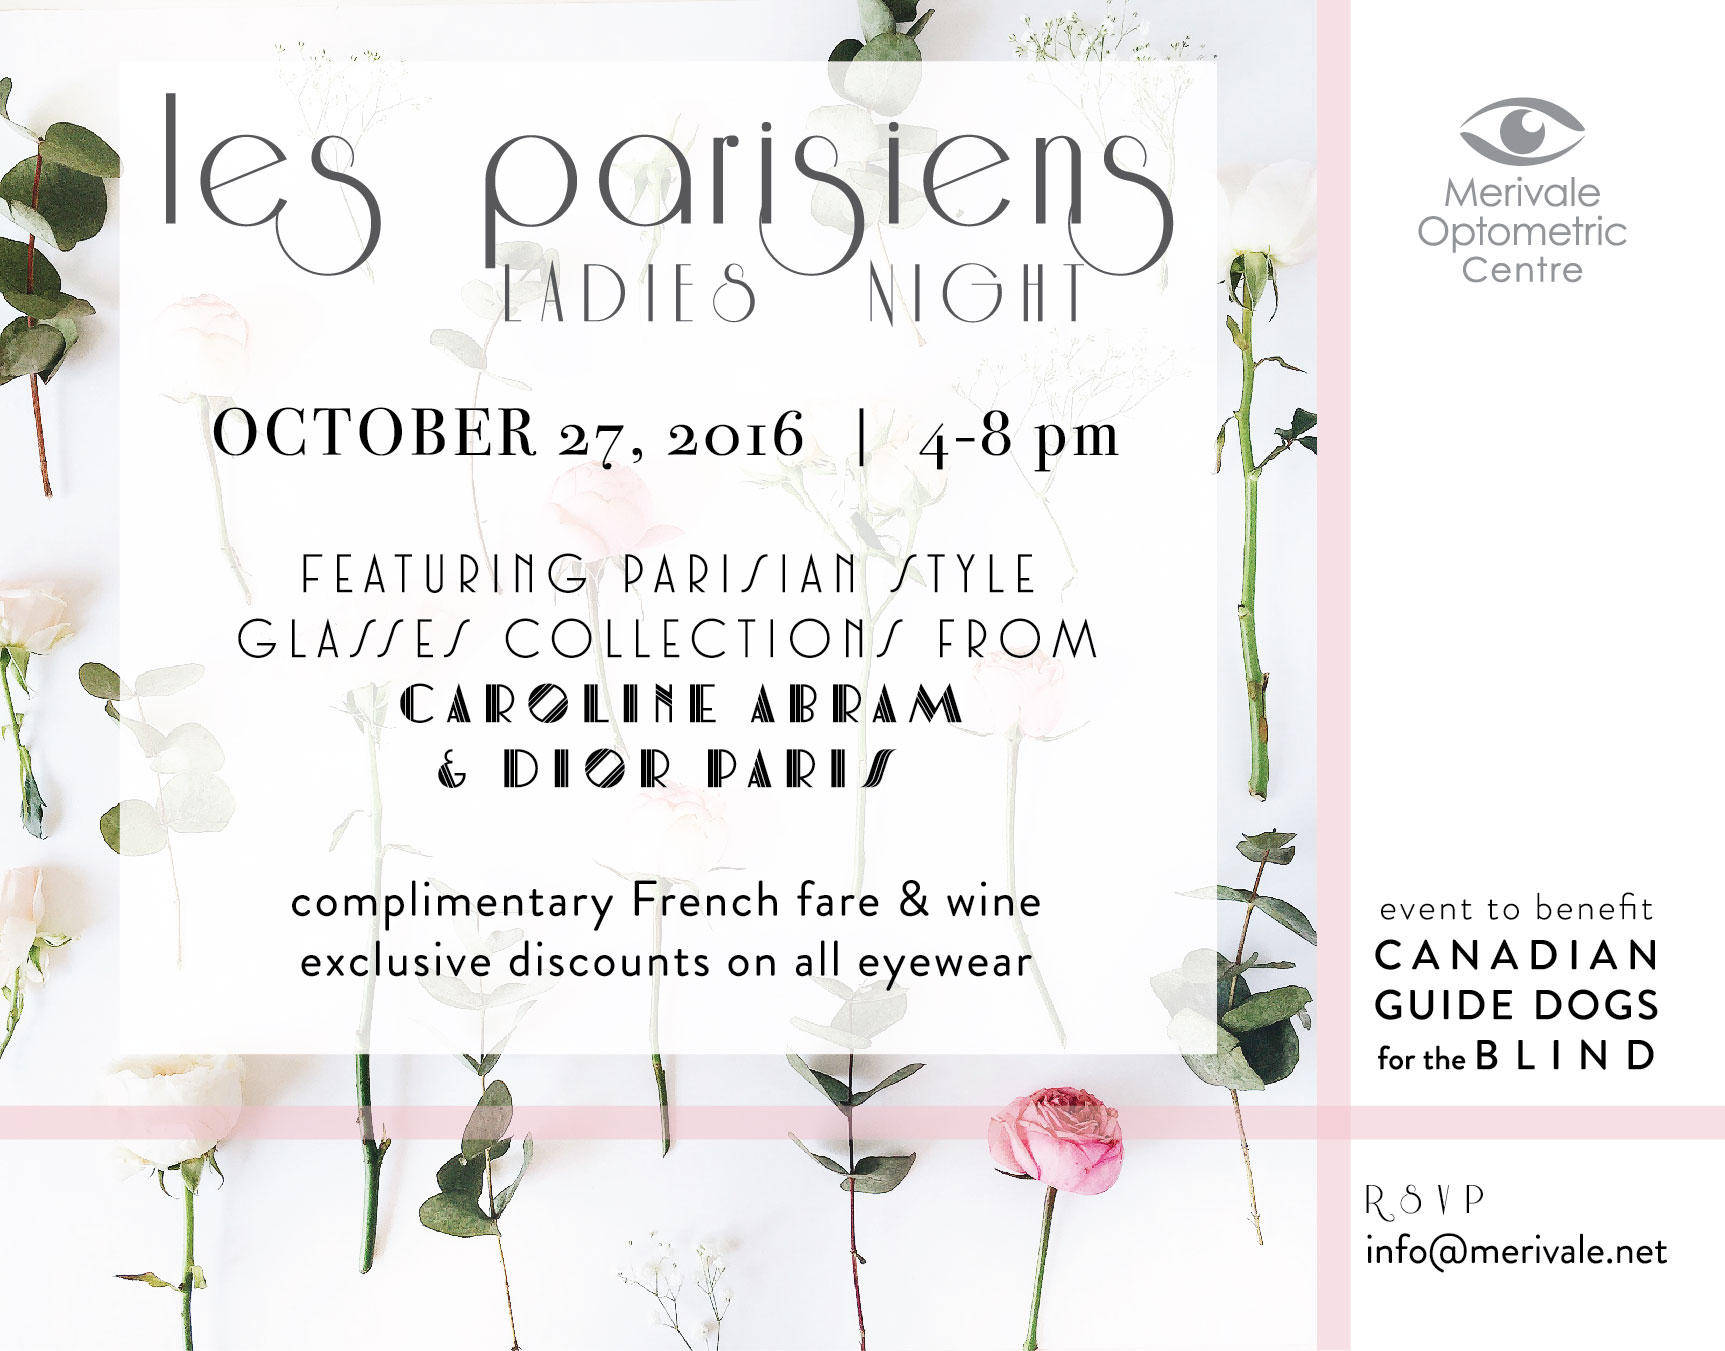 Les Parisiens - Ladies Night at Merivale Optometric, October 27, 2016